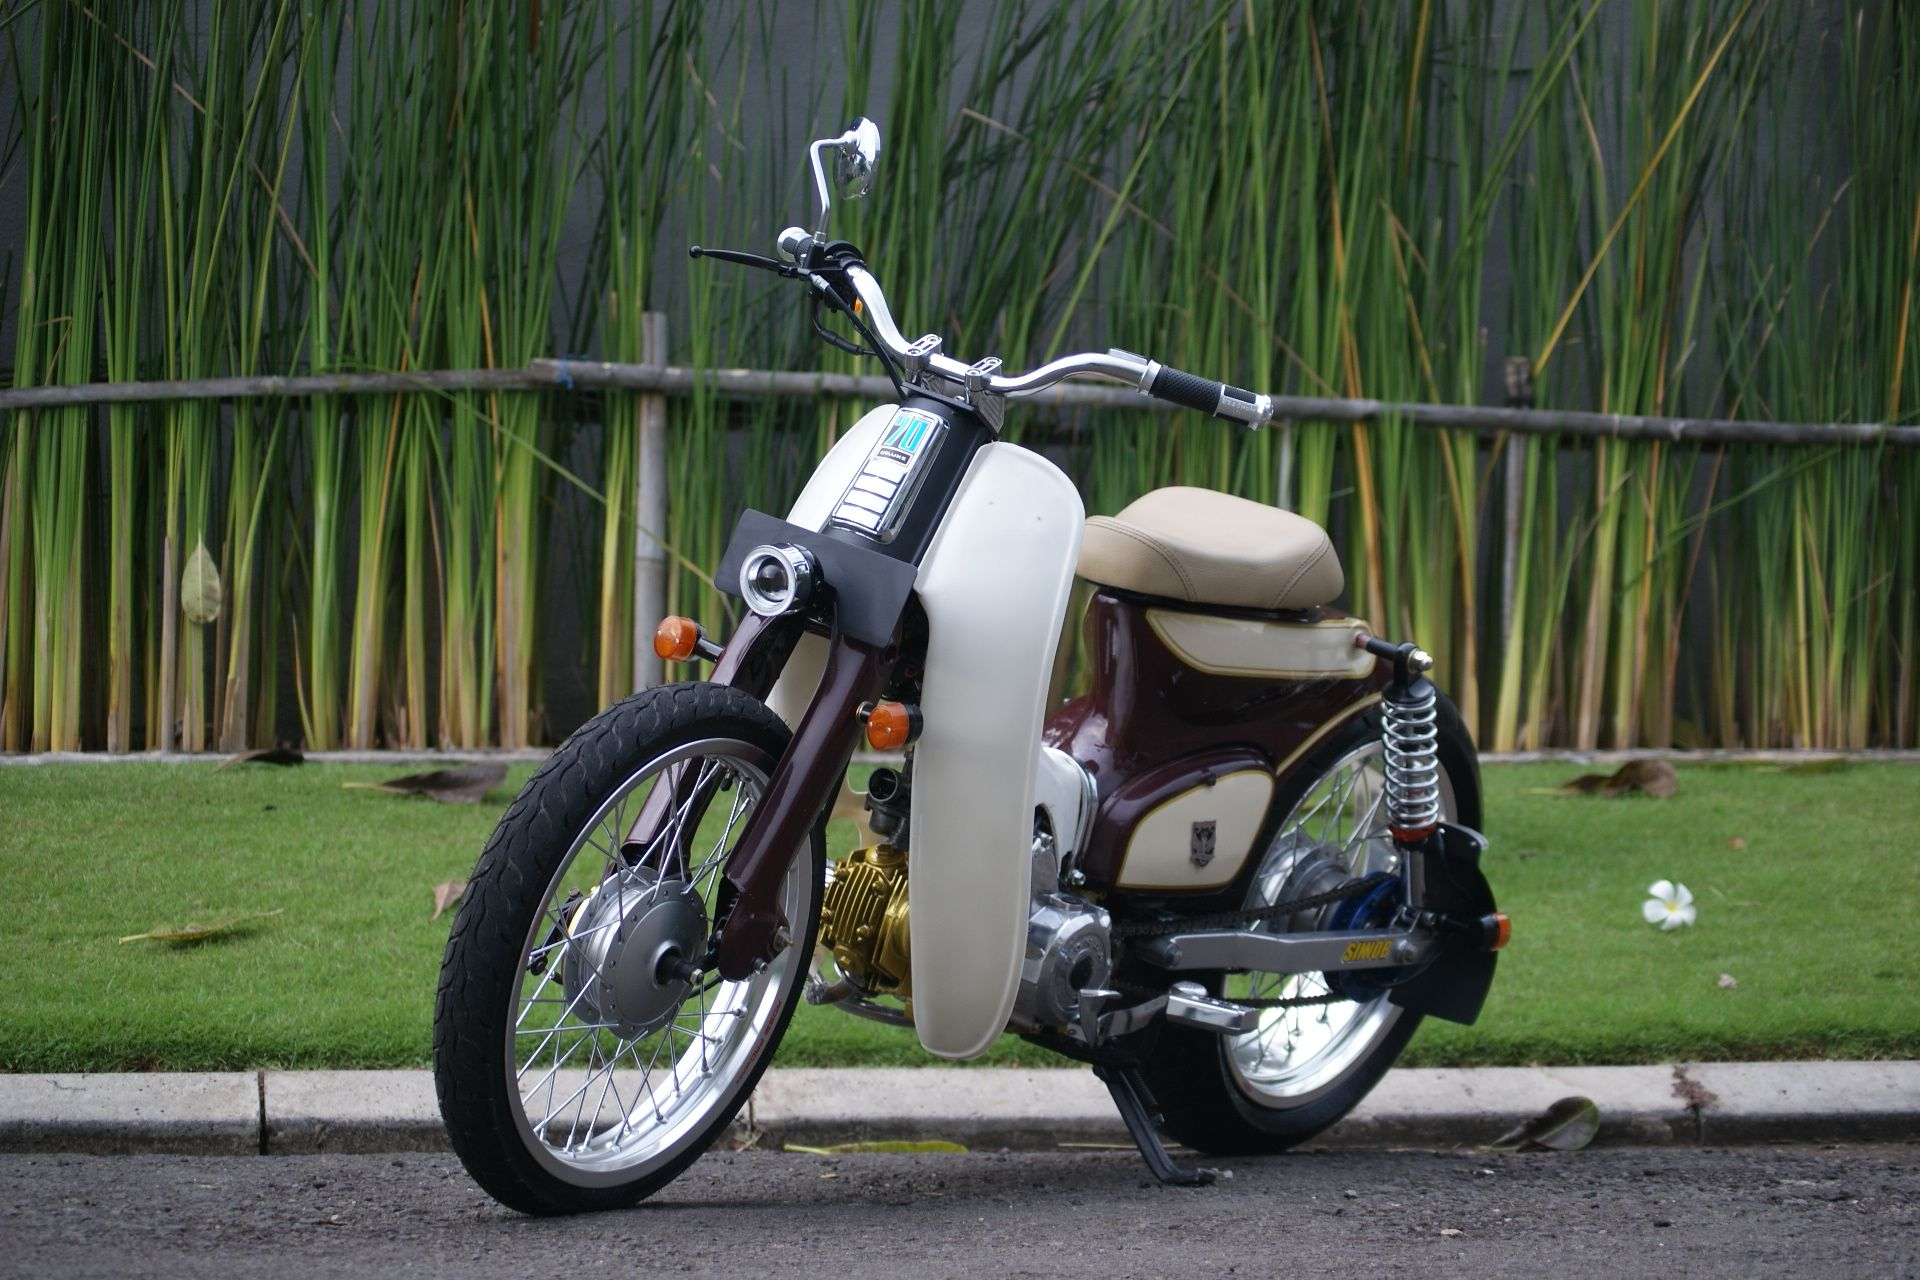 Street cub by newspeed garage benzema motorcycle for Garage modification